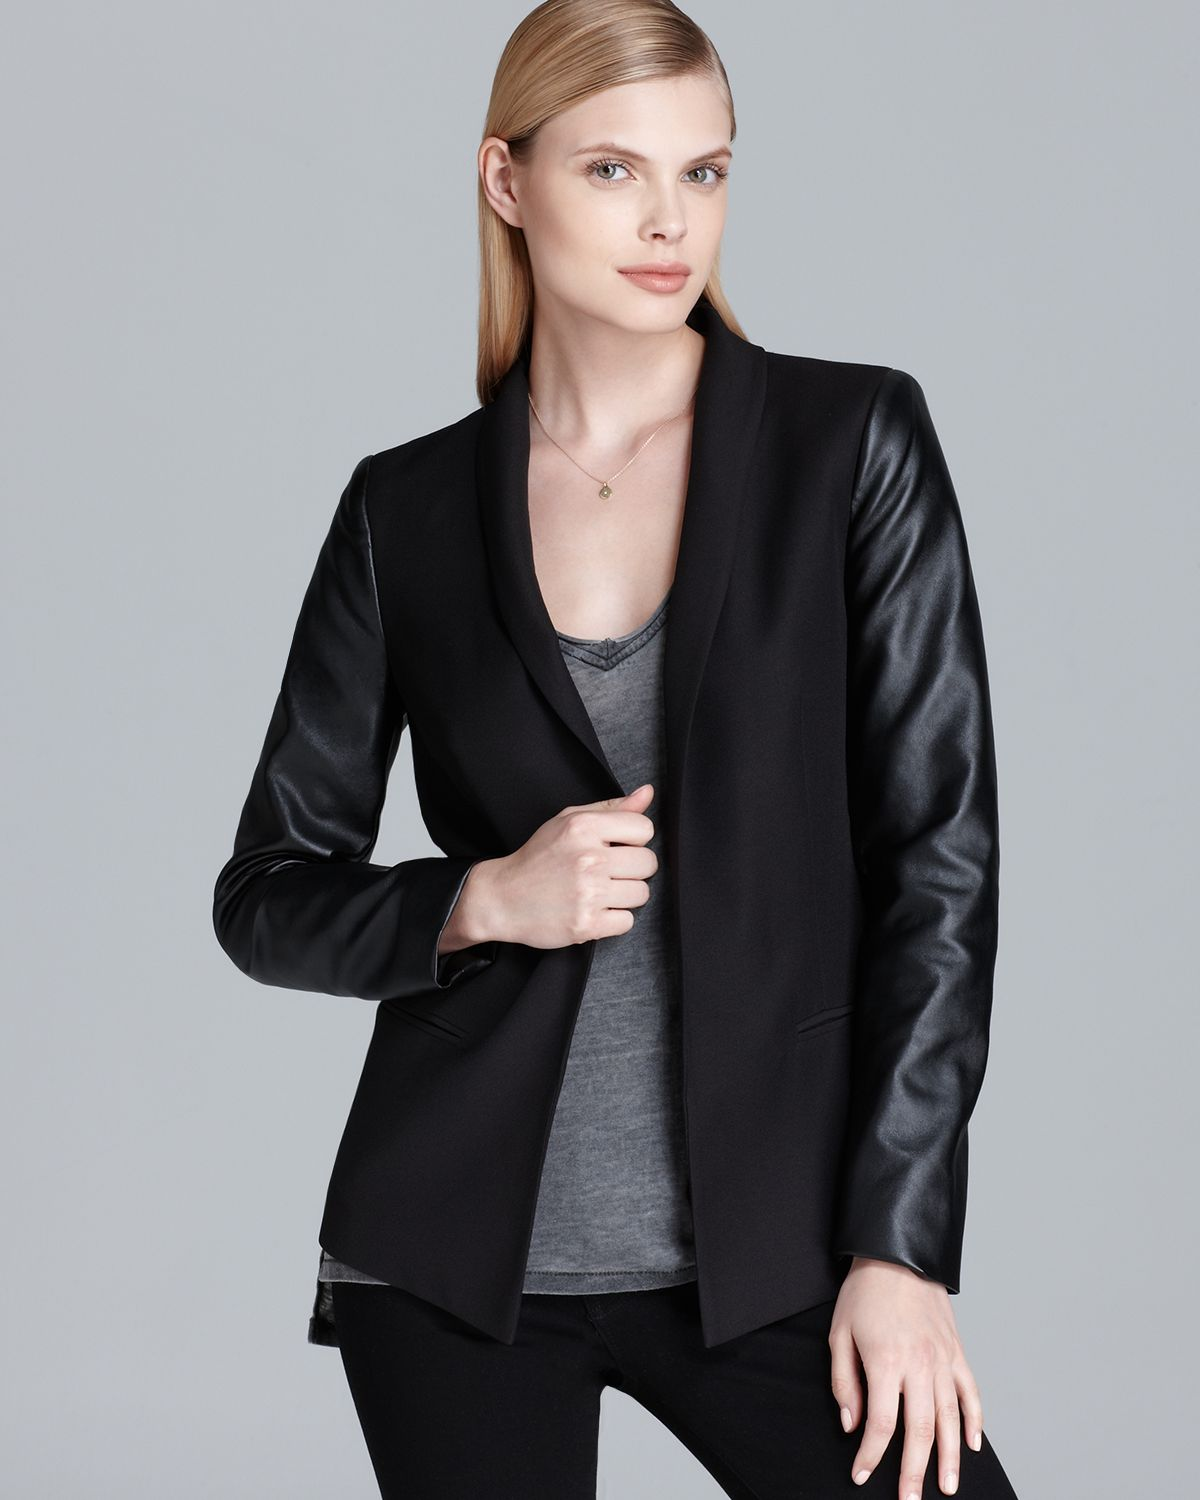 Faux Leather Sleeve Blazer - Career-or-club jacket in a sharp, fitted silhouette punctuated by crisp lapels, flap-welt pockets and a single front button closure. Faux leather sleeves and a little collar texture turn up the attitude. Back hem vent. Shoulder pads. Fully lined.5/5(11).